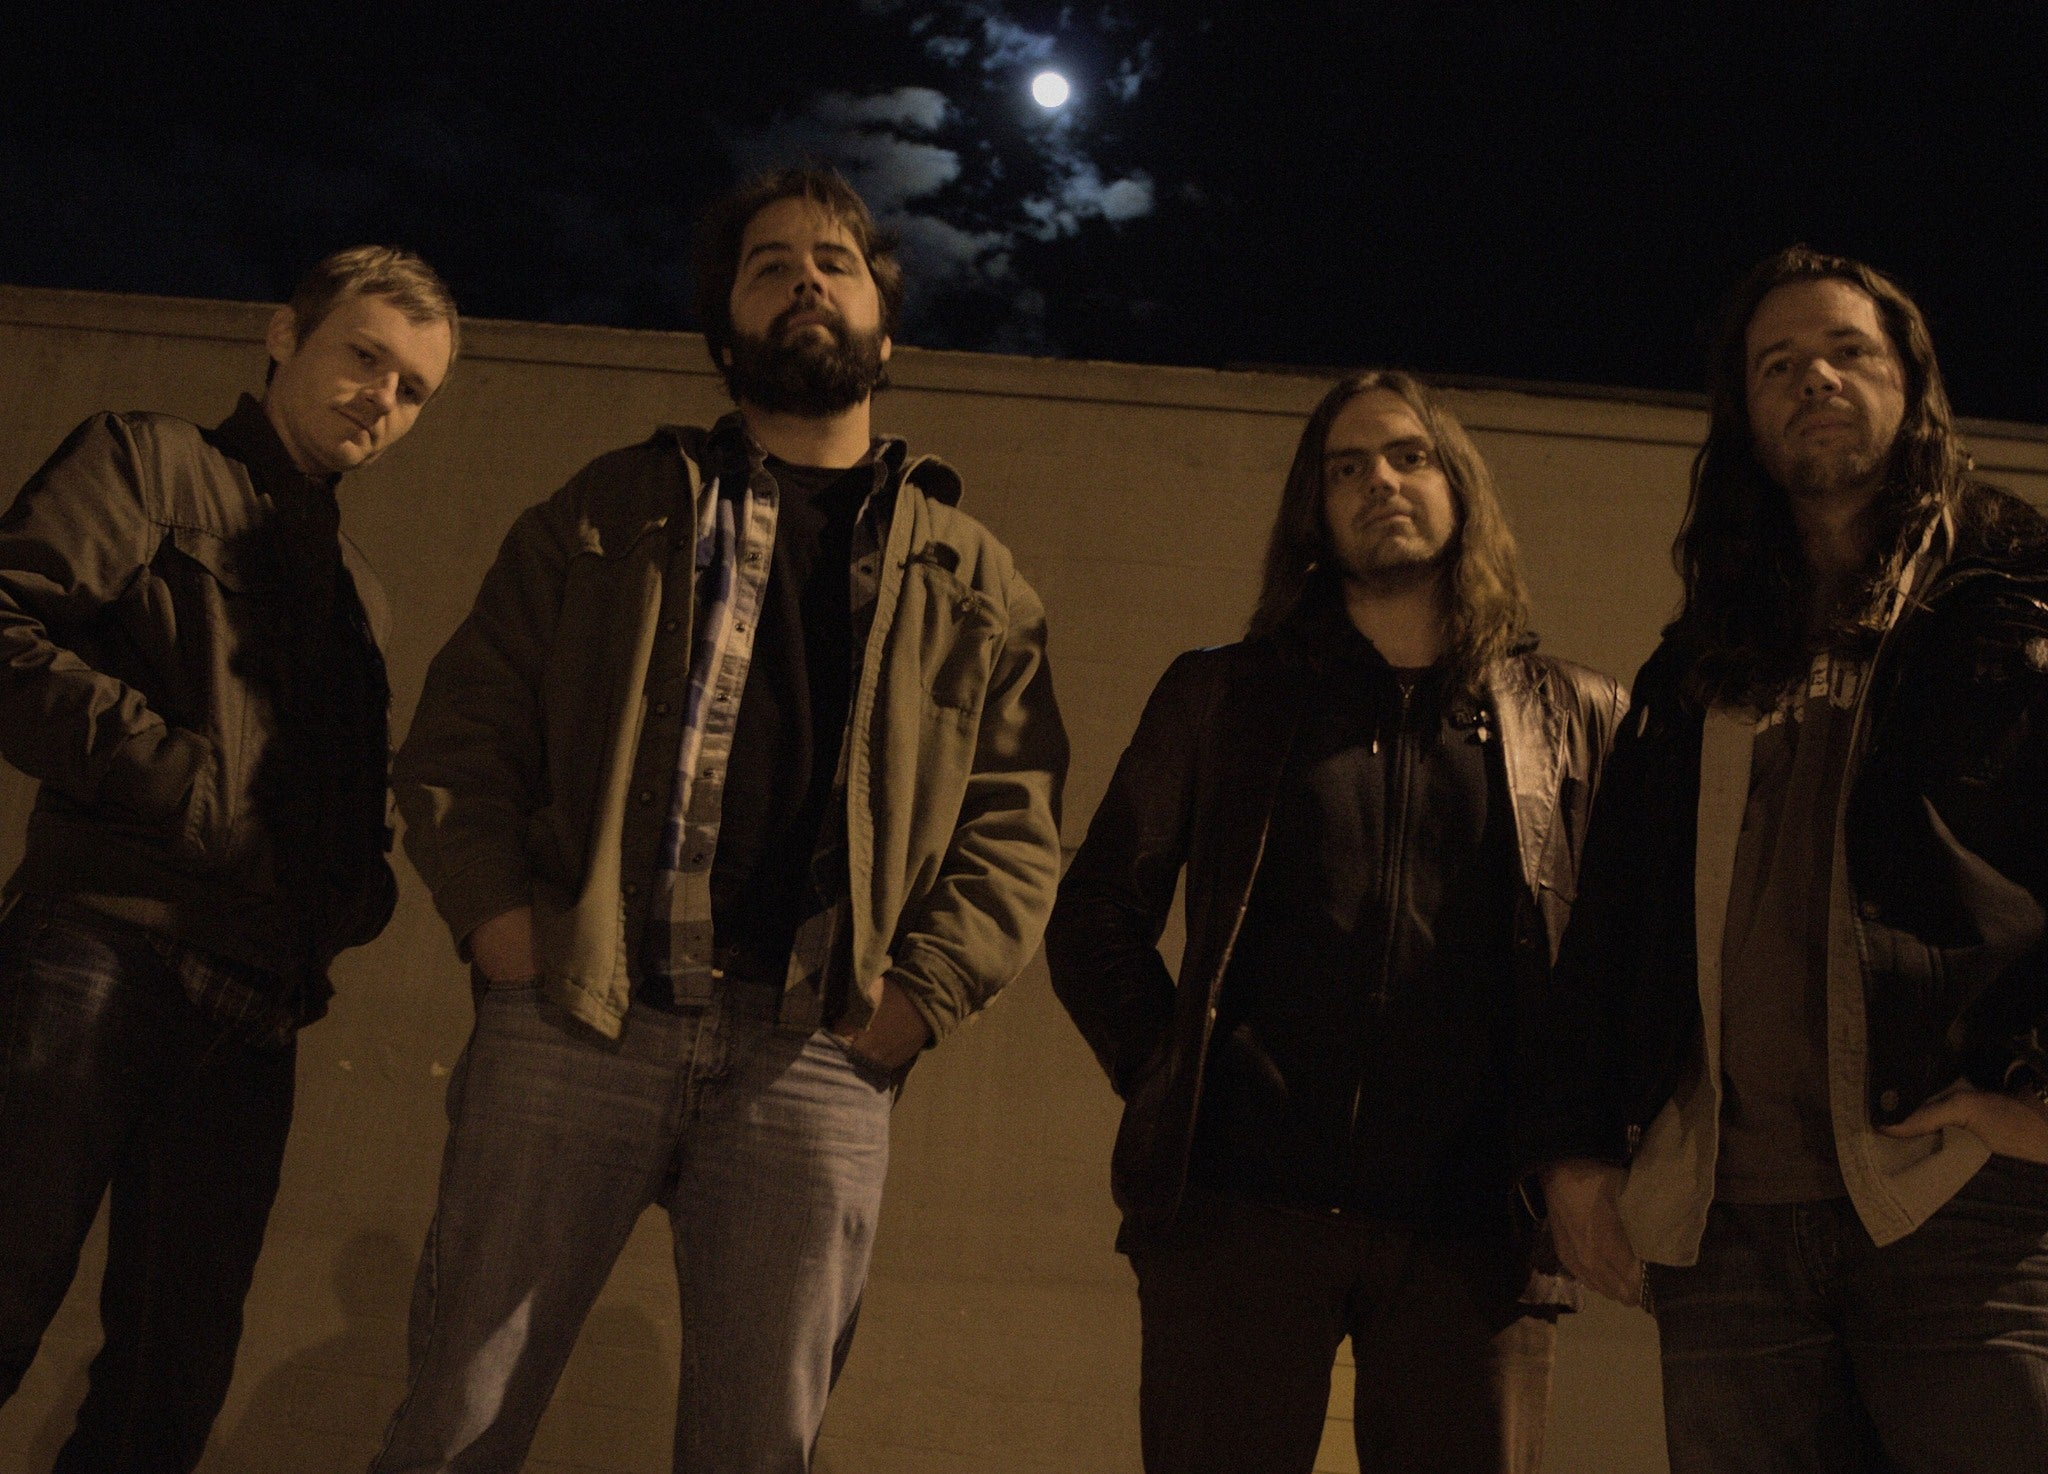 Heavy-Vinyl Presents: An Interview with Demon Eye